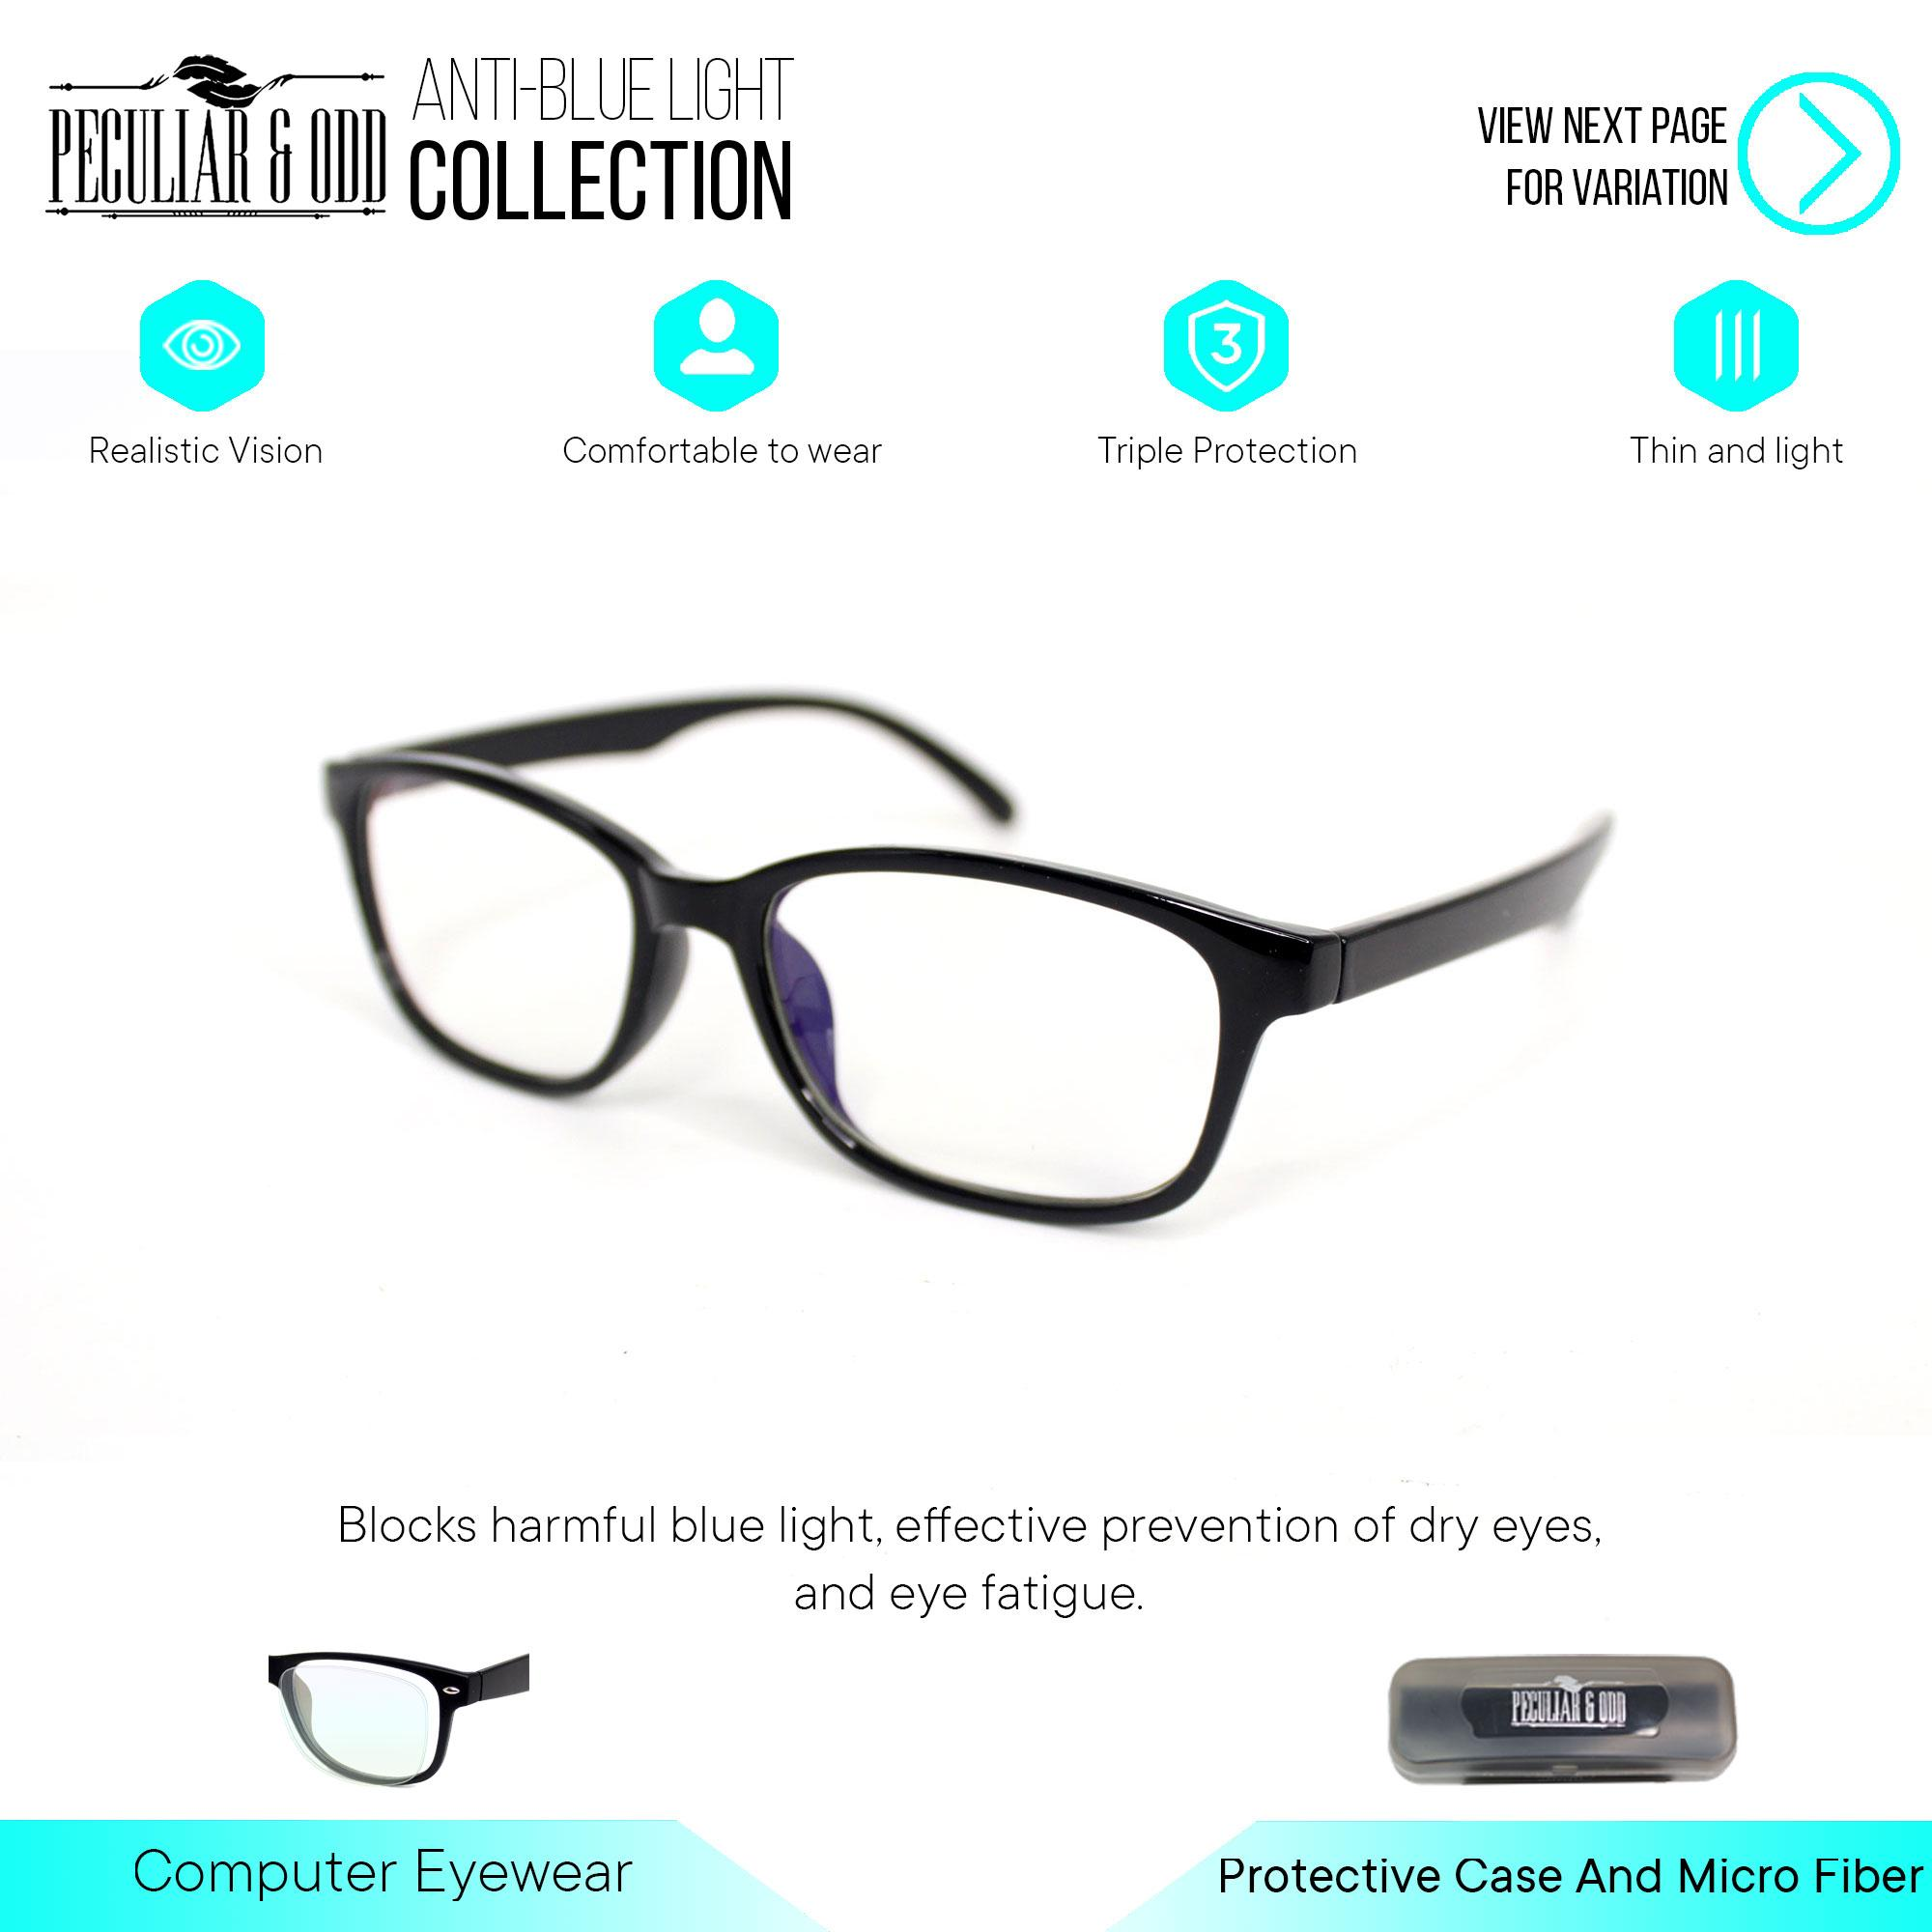 23de1e52b4e5 Peculiar Square 3028 CoalBlackClear Anti Radiation Computer Eyeglass Optical  Replaceable Eyewear Unisex new